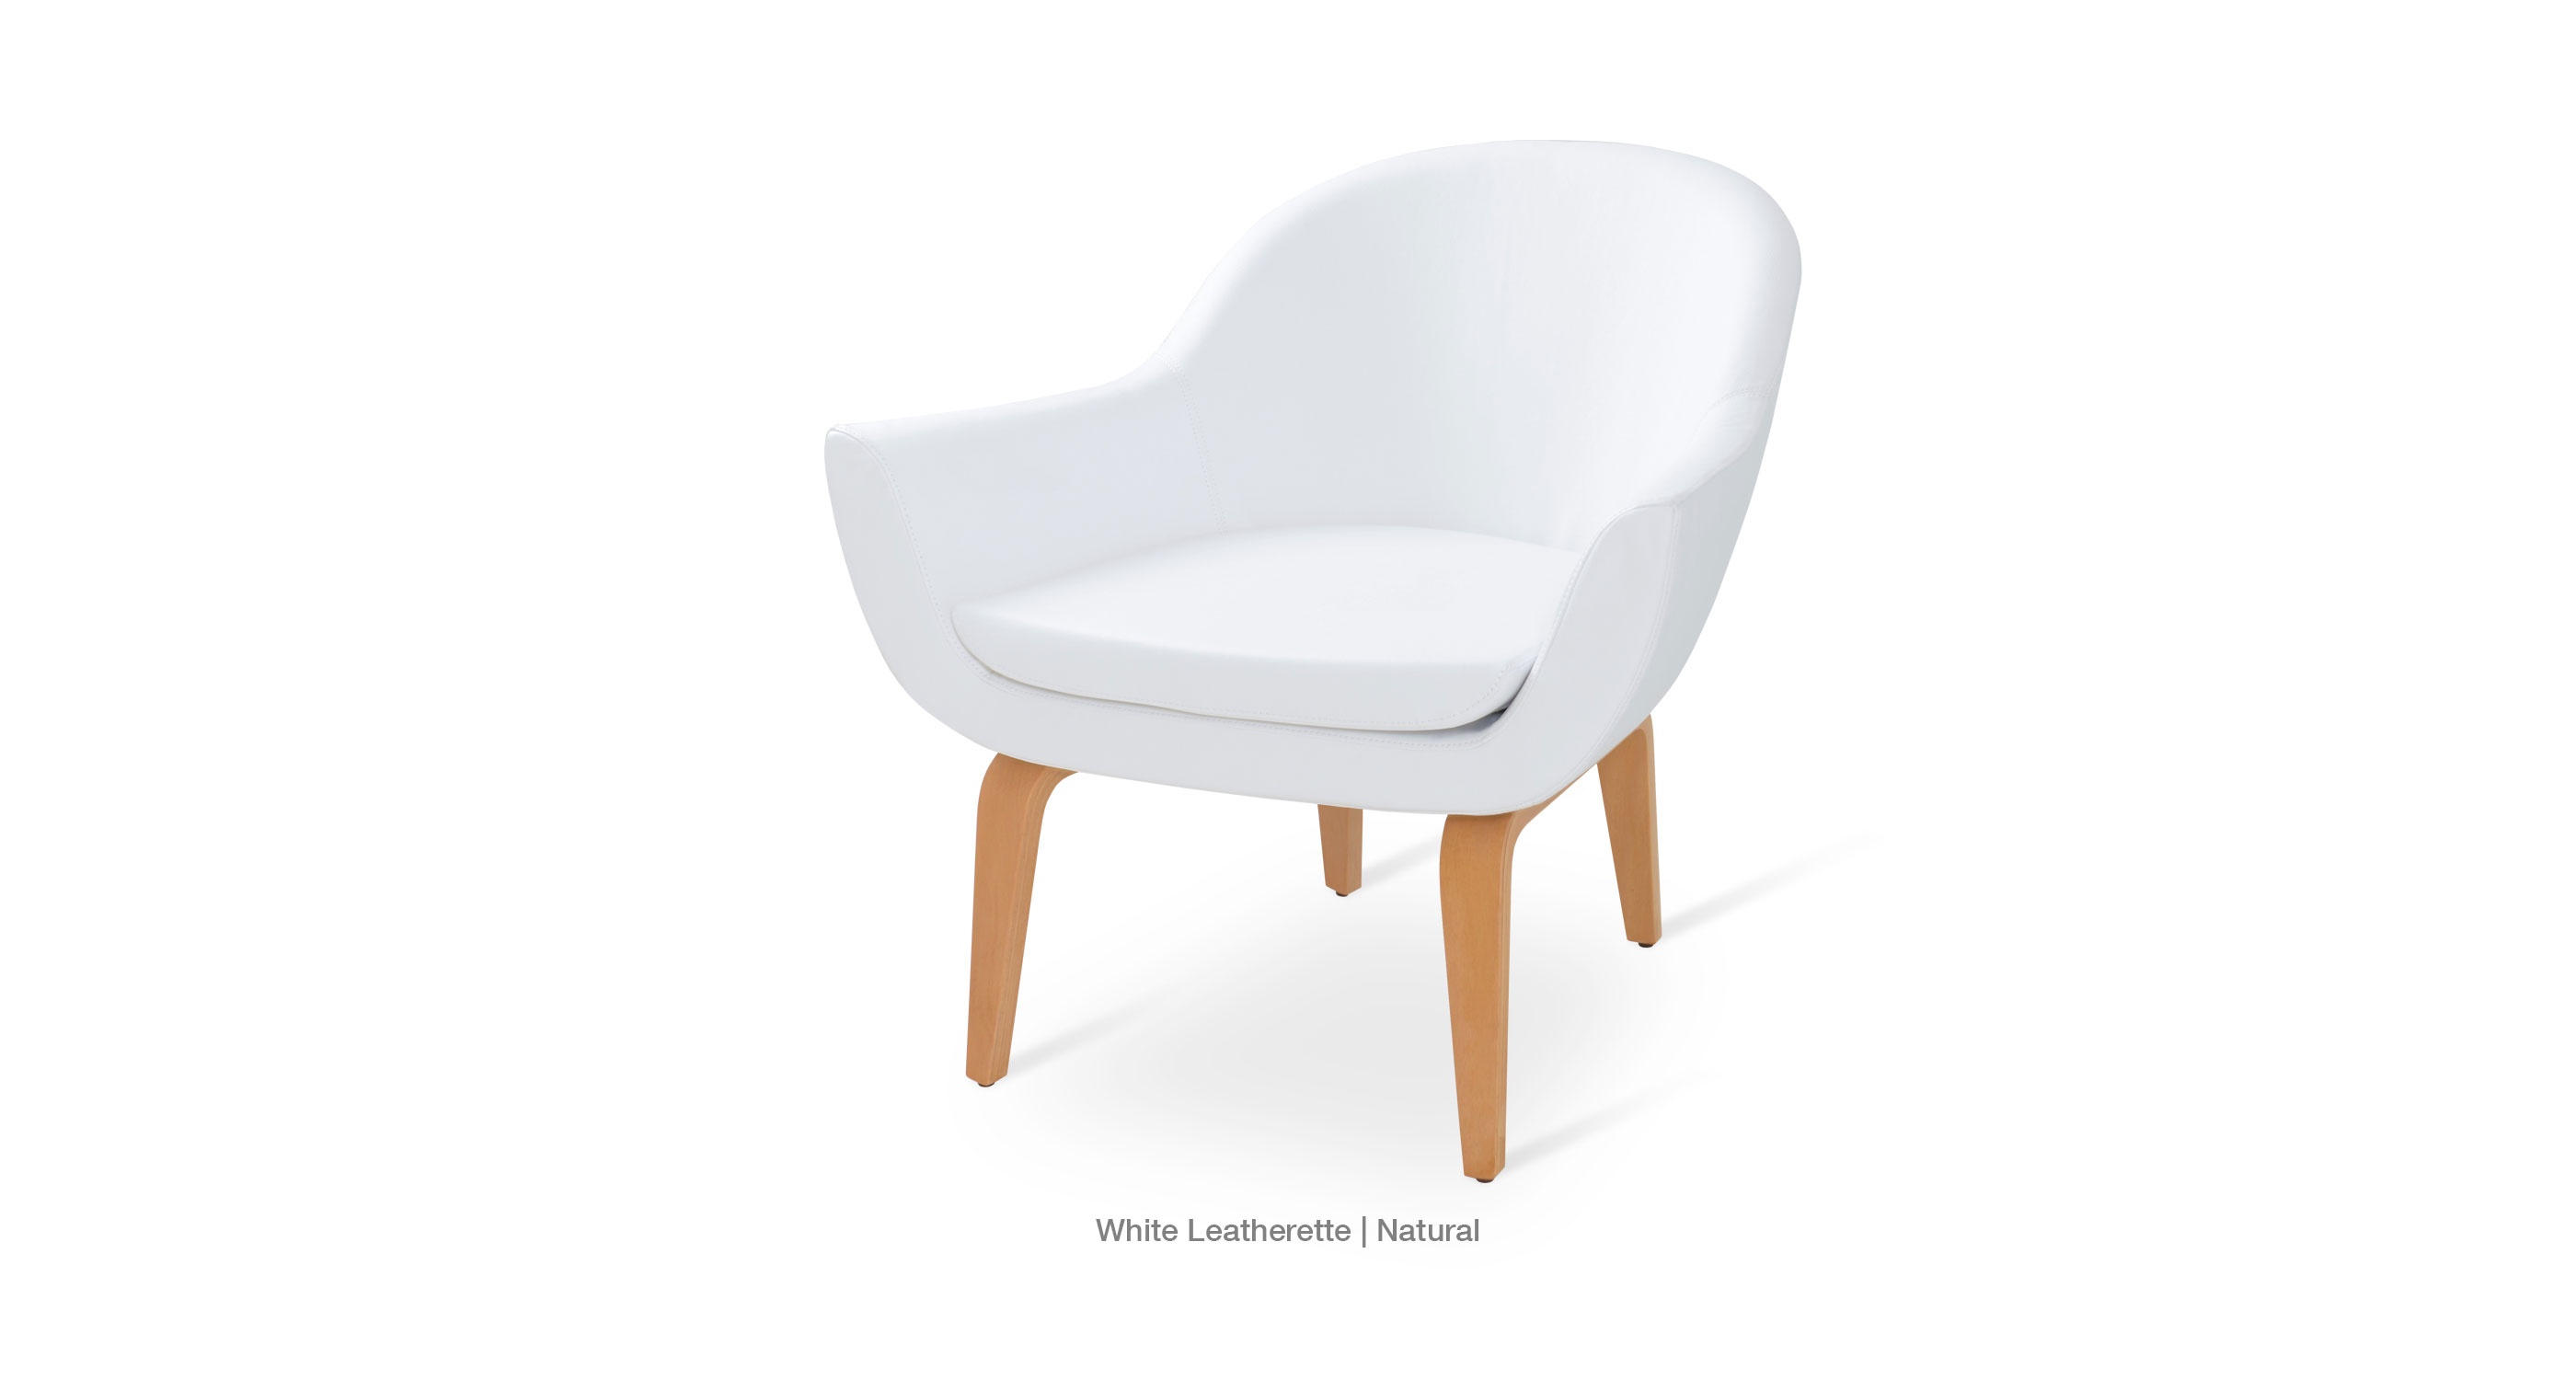 white leatherette - natural